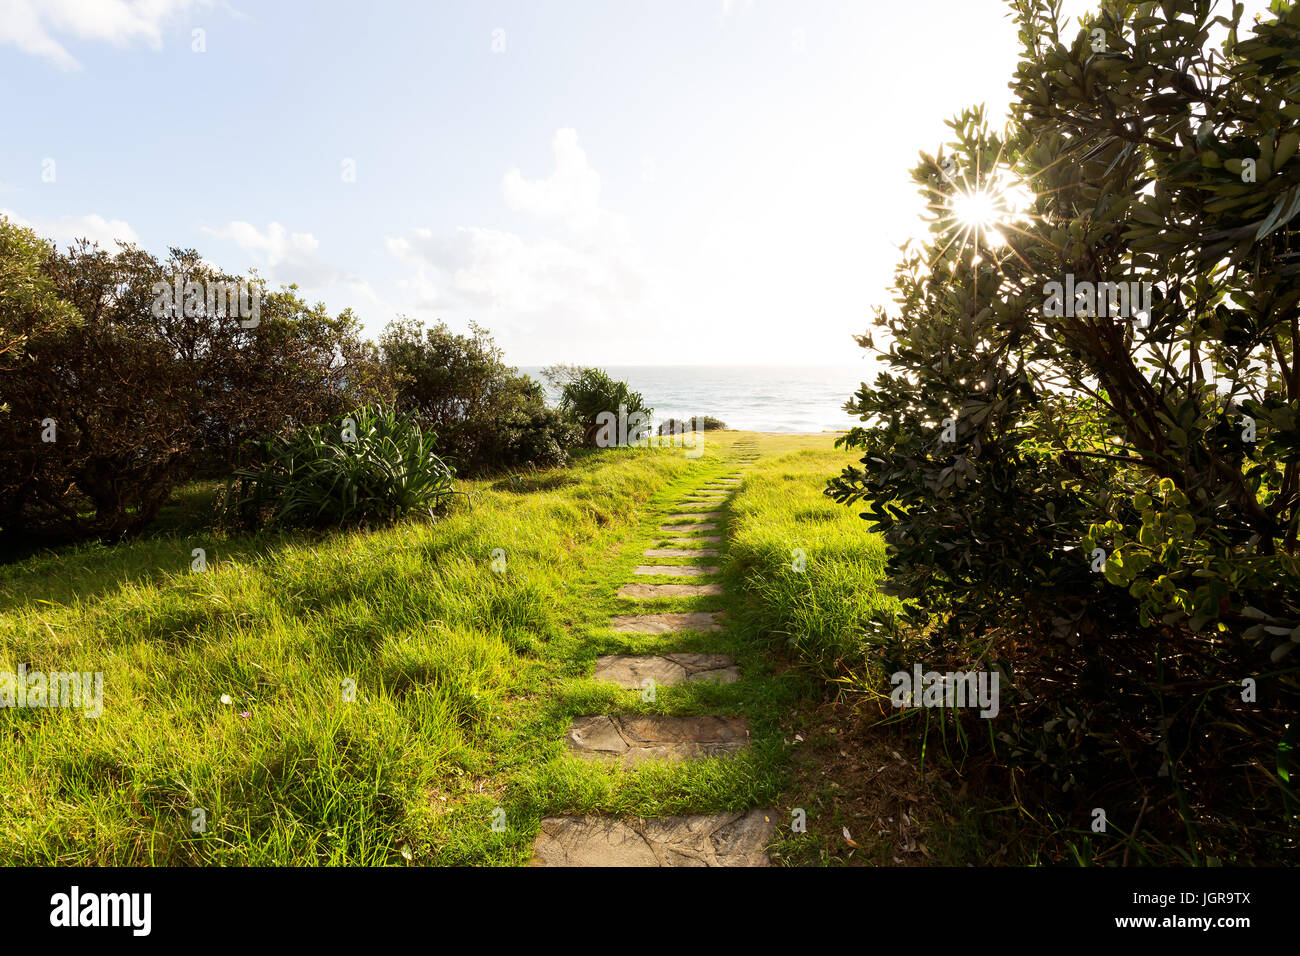 Stepping stones lead through illuminated green grass towards a bright sunstar that shines through the trees on a - Stock Image